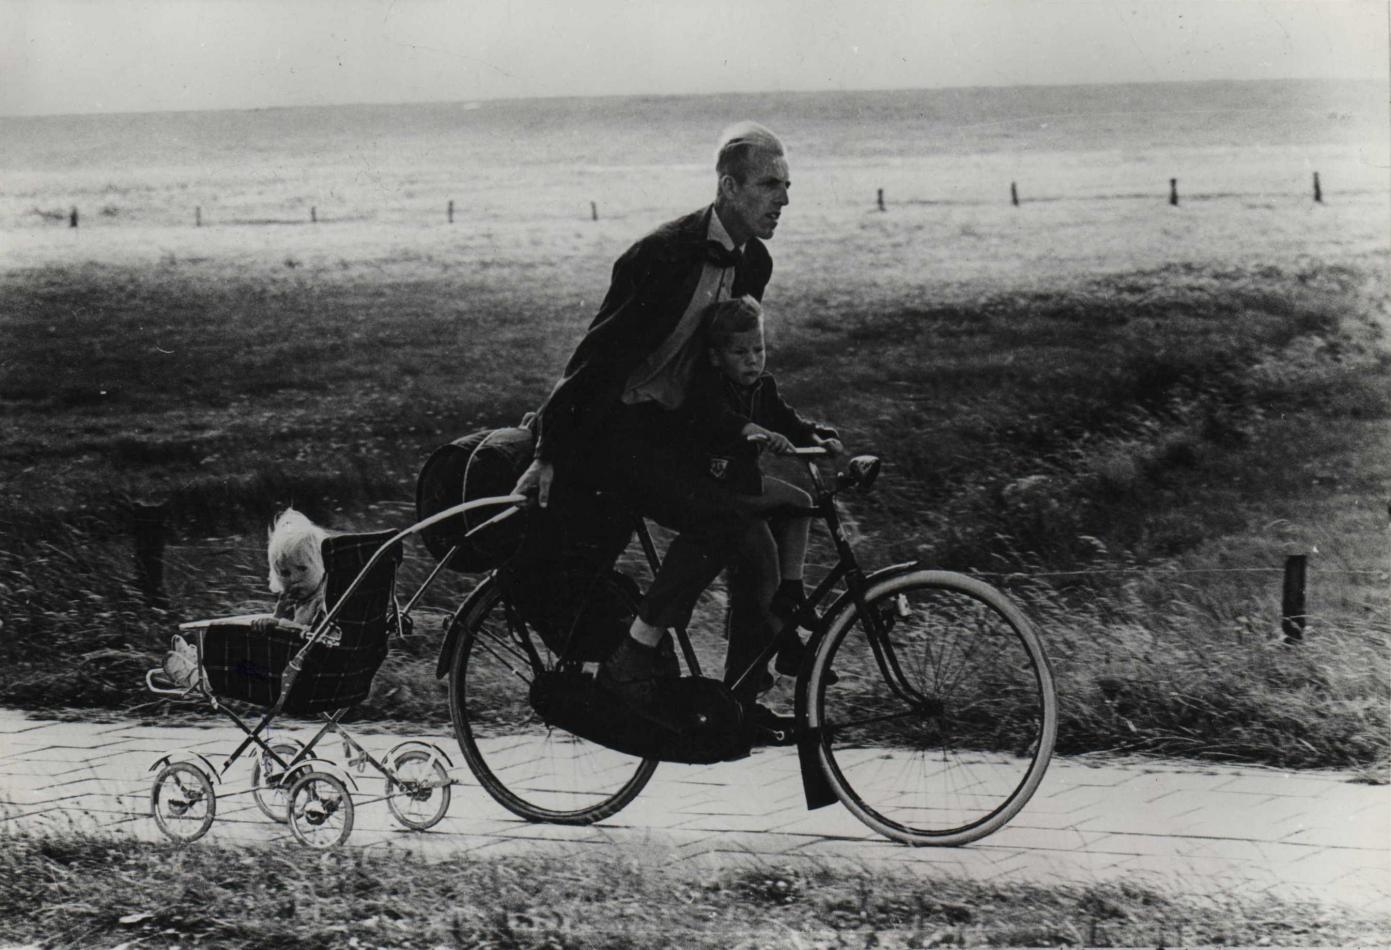 23 - c. 1966. A father in Netherlands. Photo by Rudy Herzog.